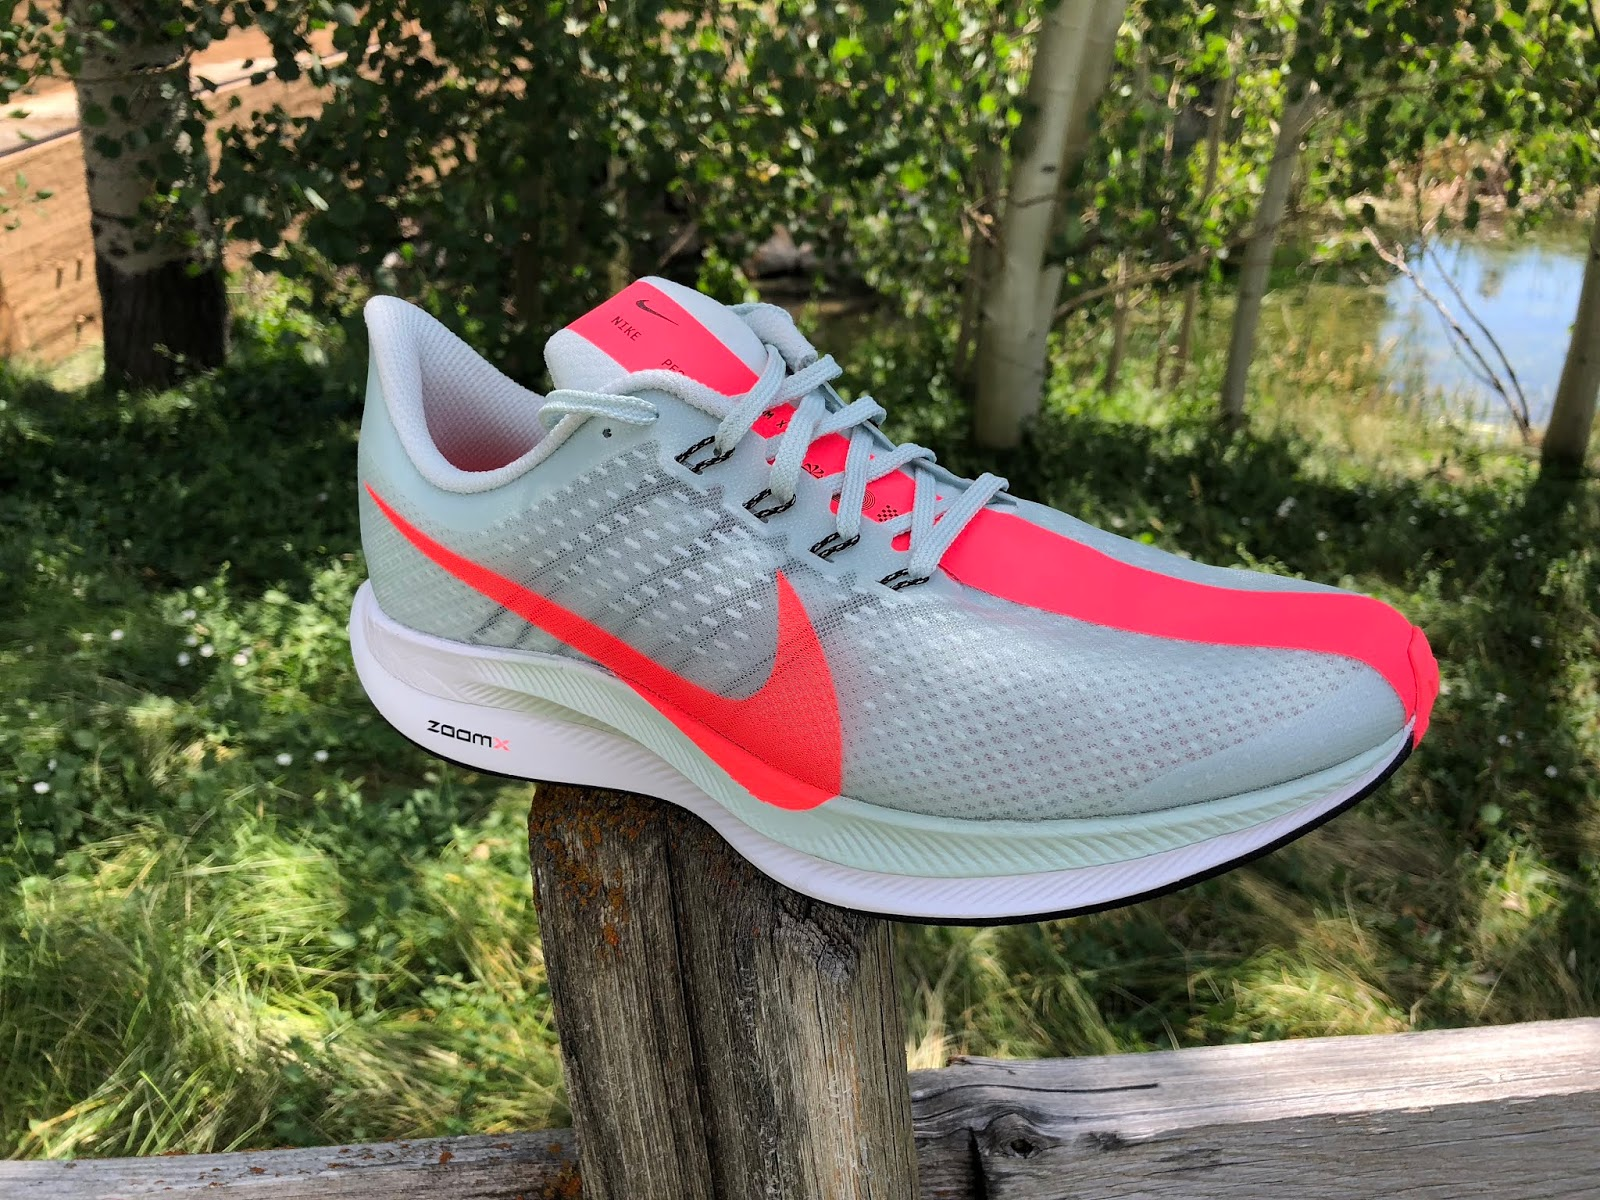 48cc7f434e256 Road Trail Run  Nike Zoom Pegasus Turbo 120 Mile Road Test Review ...